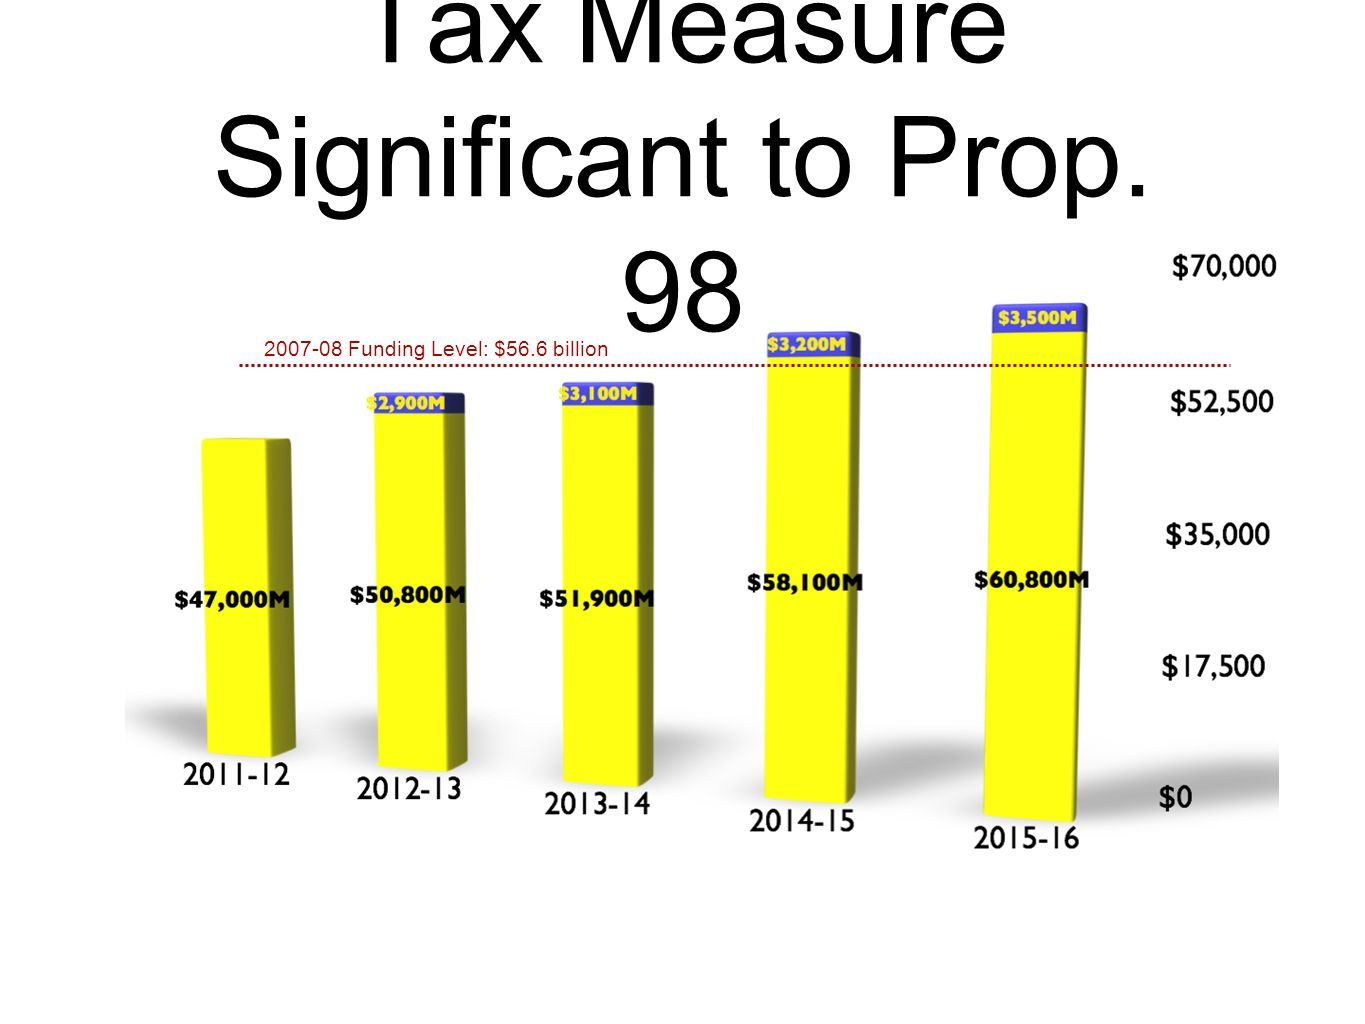 Tax Measure Significant to Prop. 98 2007-08 Funding Level: $56.6 billion